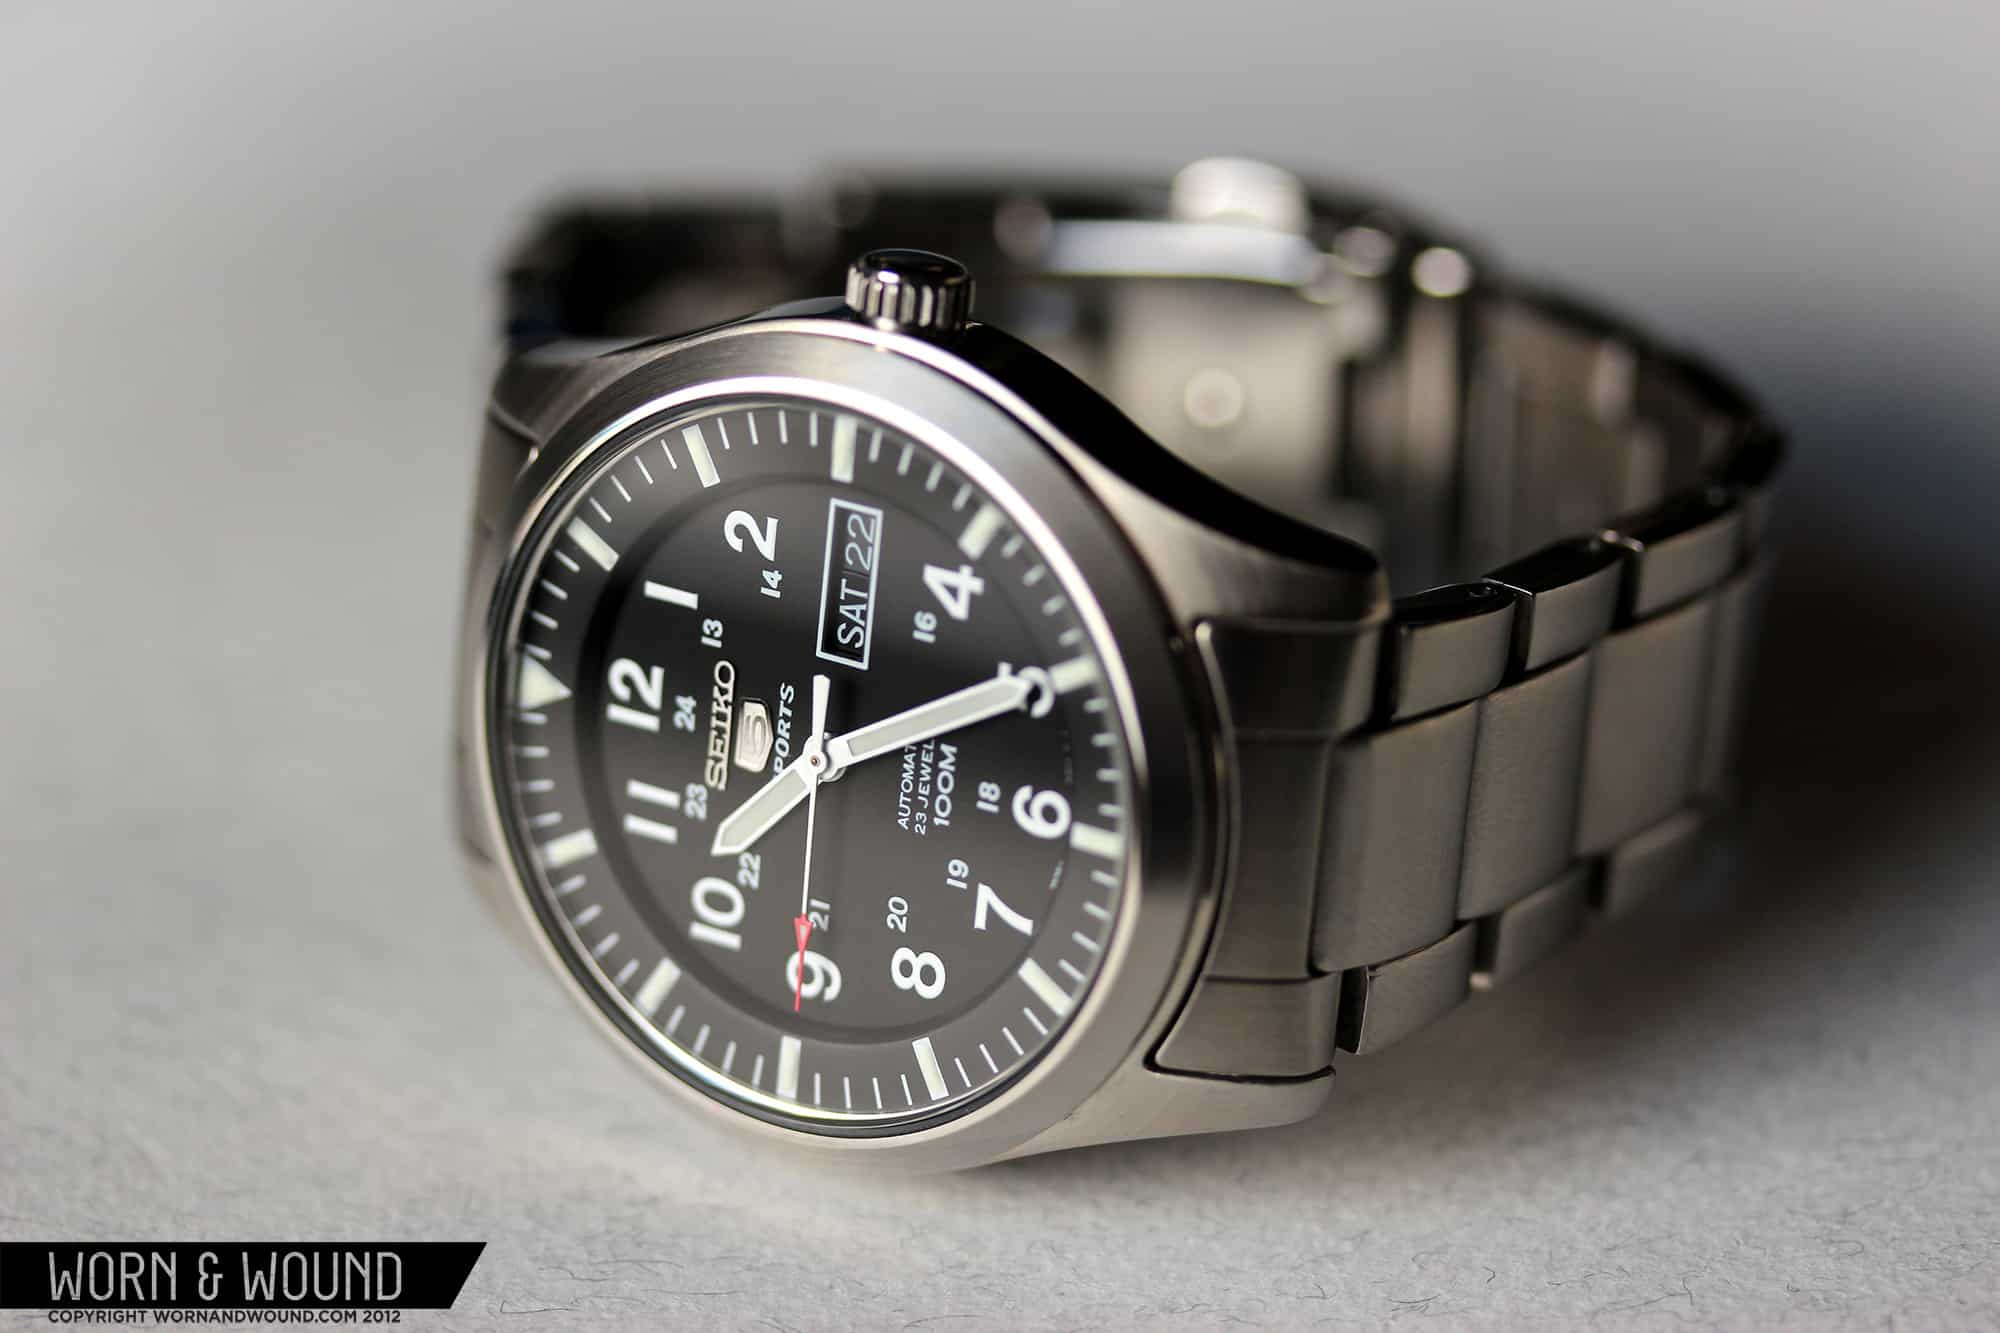 Review: Seiko 5 Sport SNZG13 - Worn & Wound